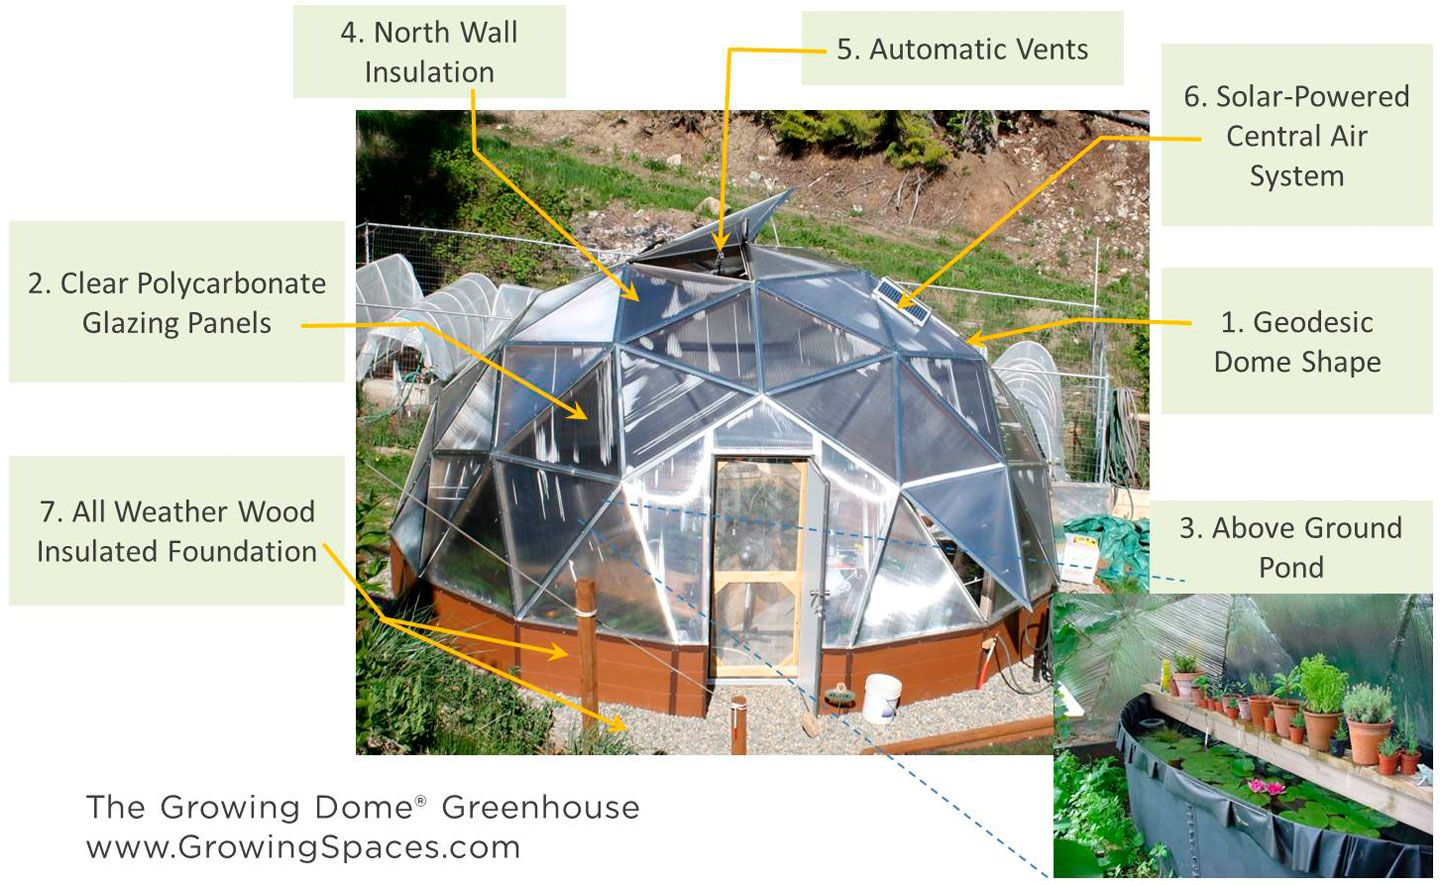 Geodesic Dome Greenhouse Design: Energy Efficient Year Round ... on